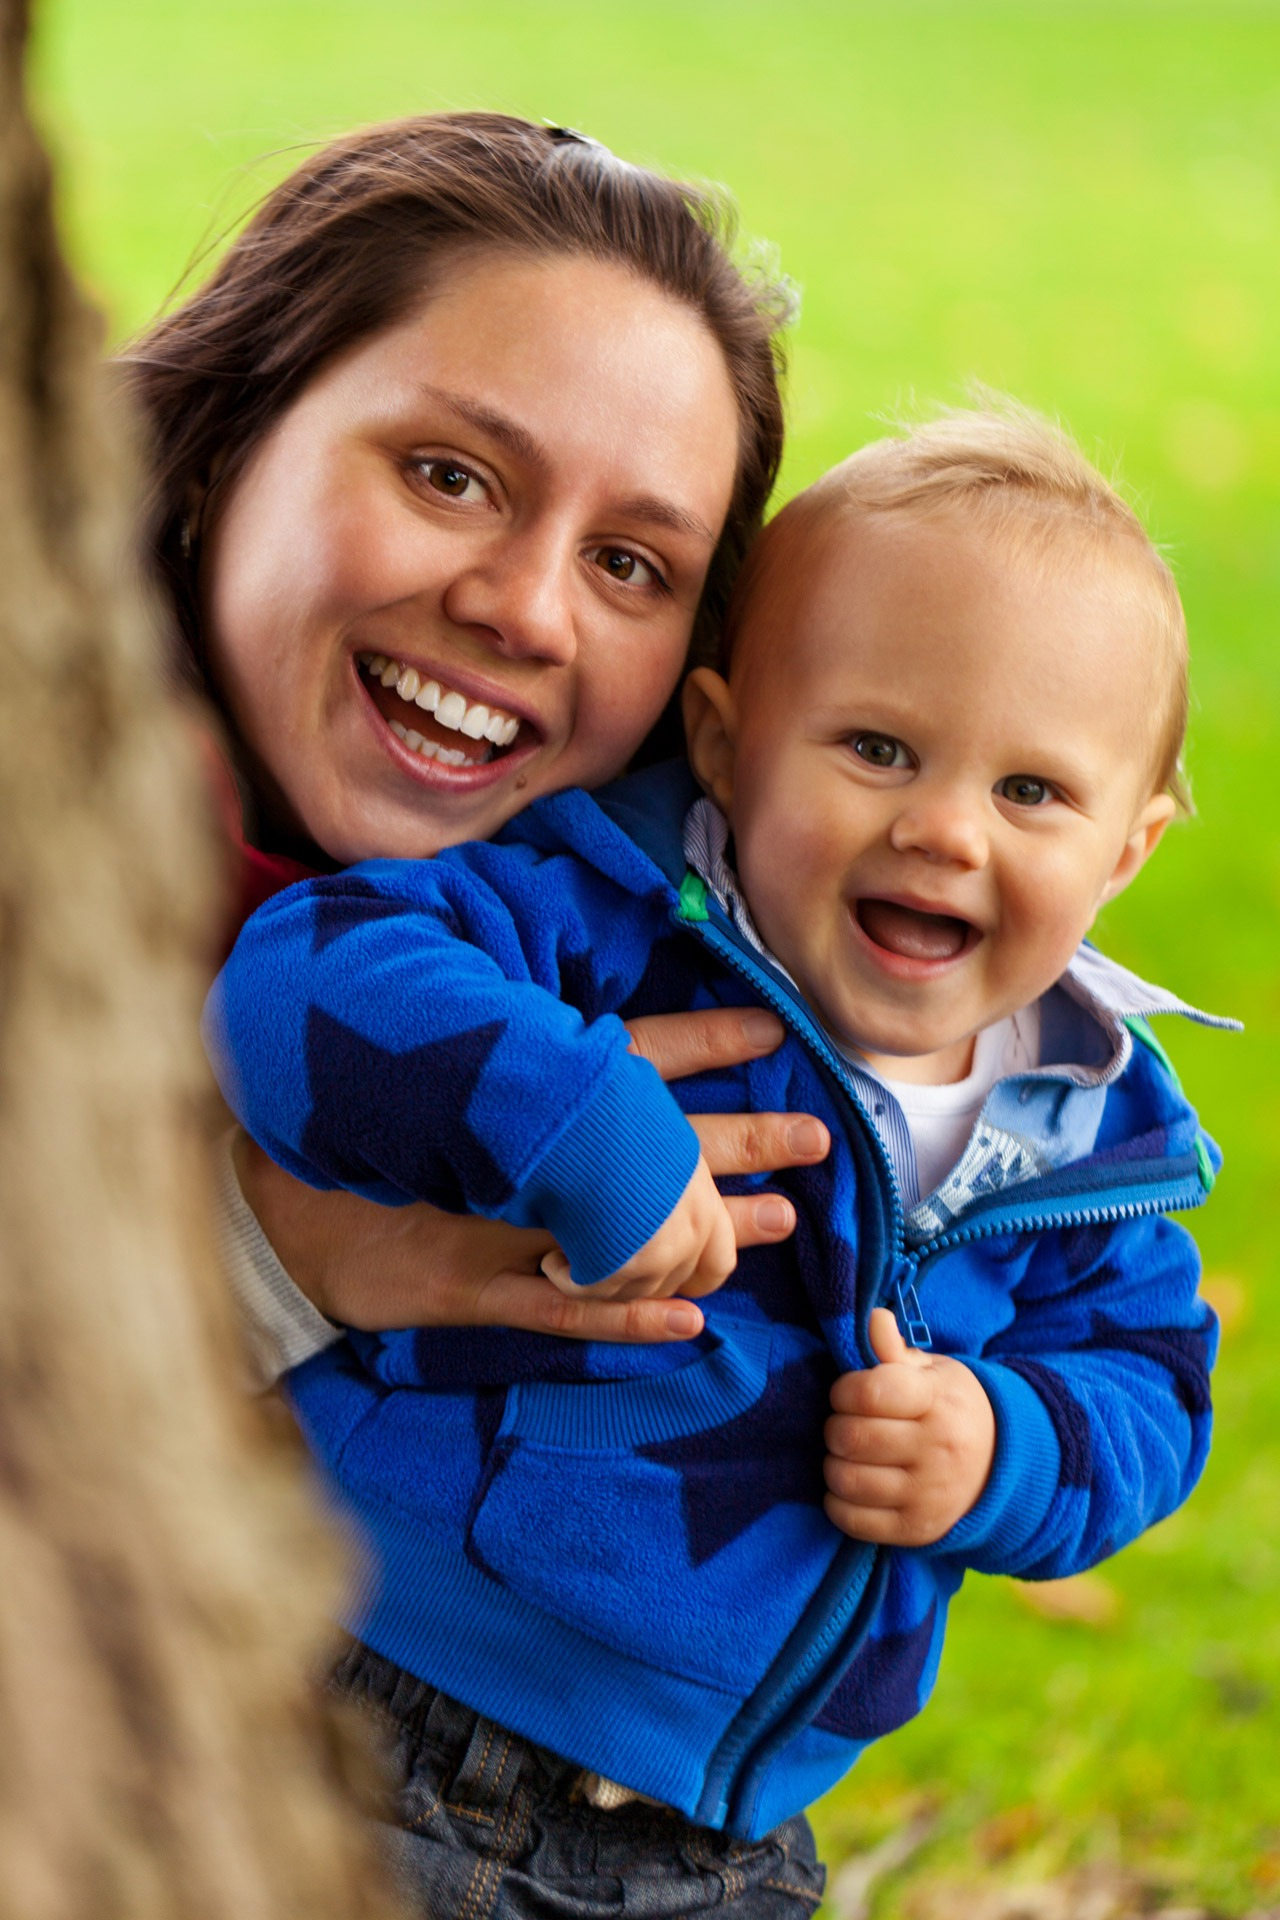 woman and baby smiling